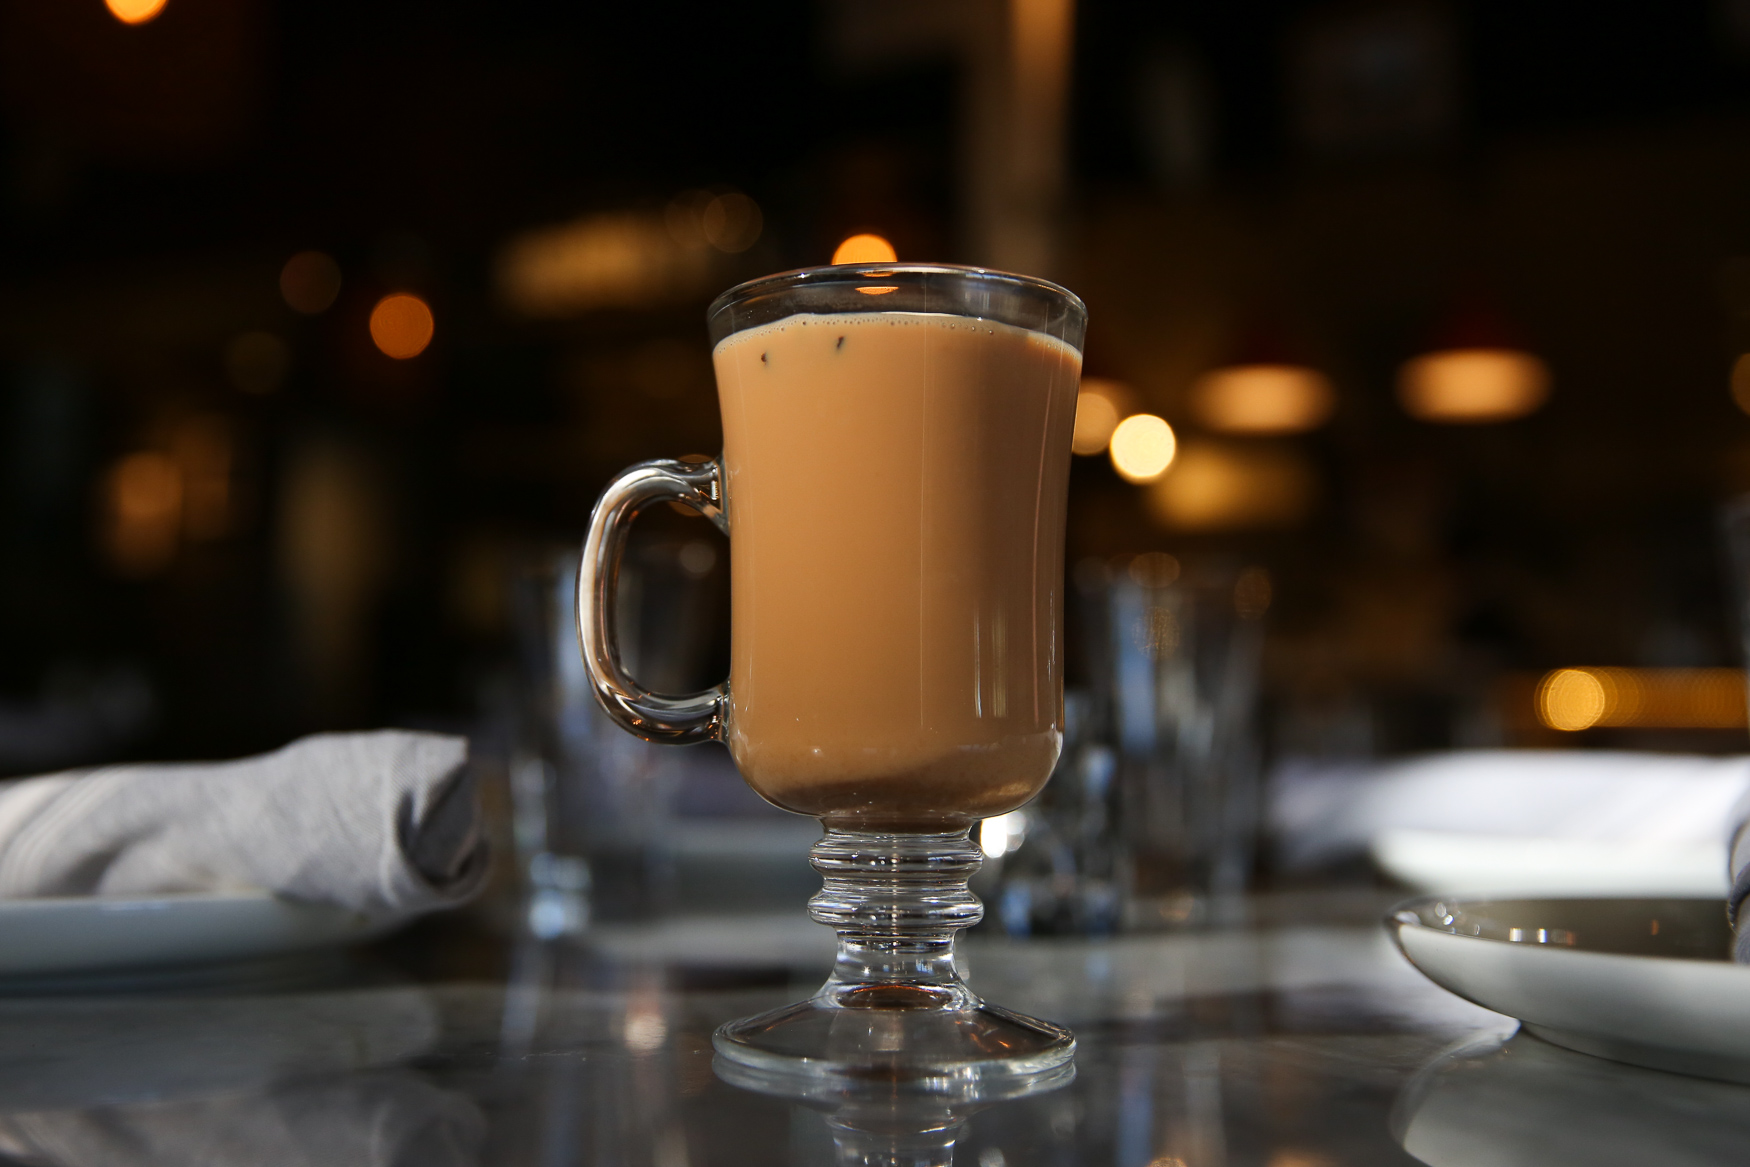 Indian masala chai is a quintessential part of daily life in India. (Image: Amanda Andrade-Rhoades/ DC Refined)